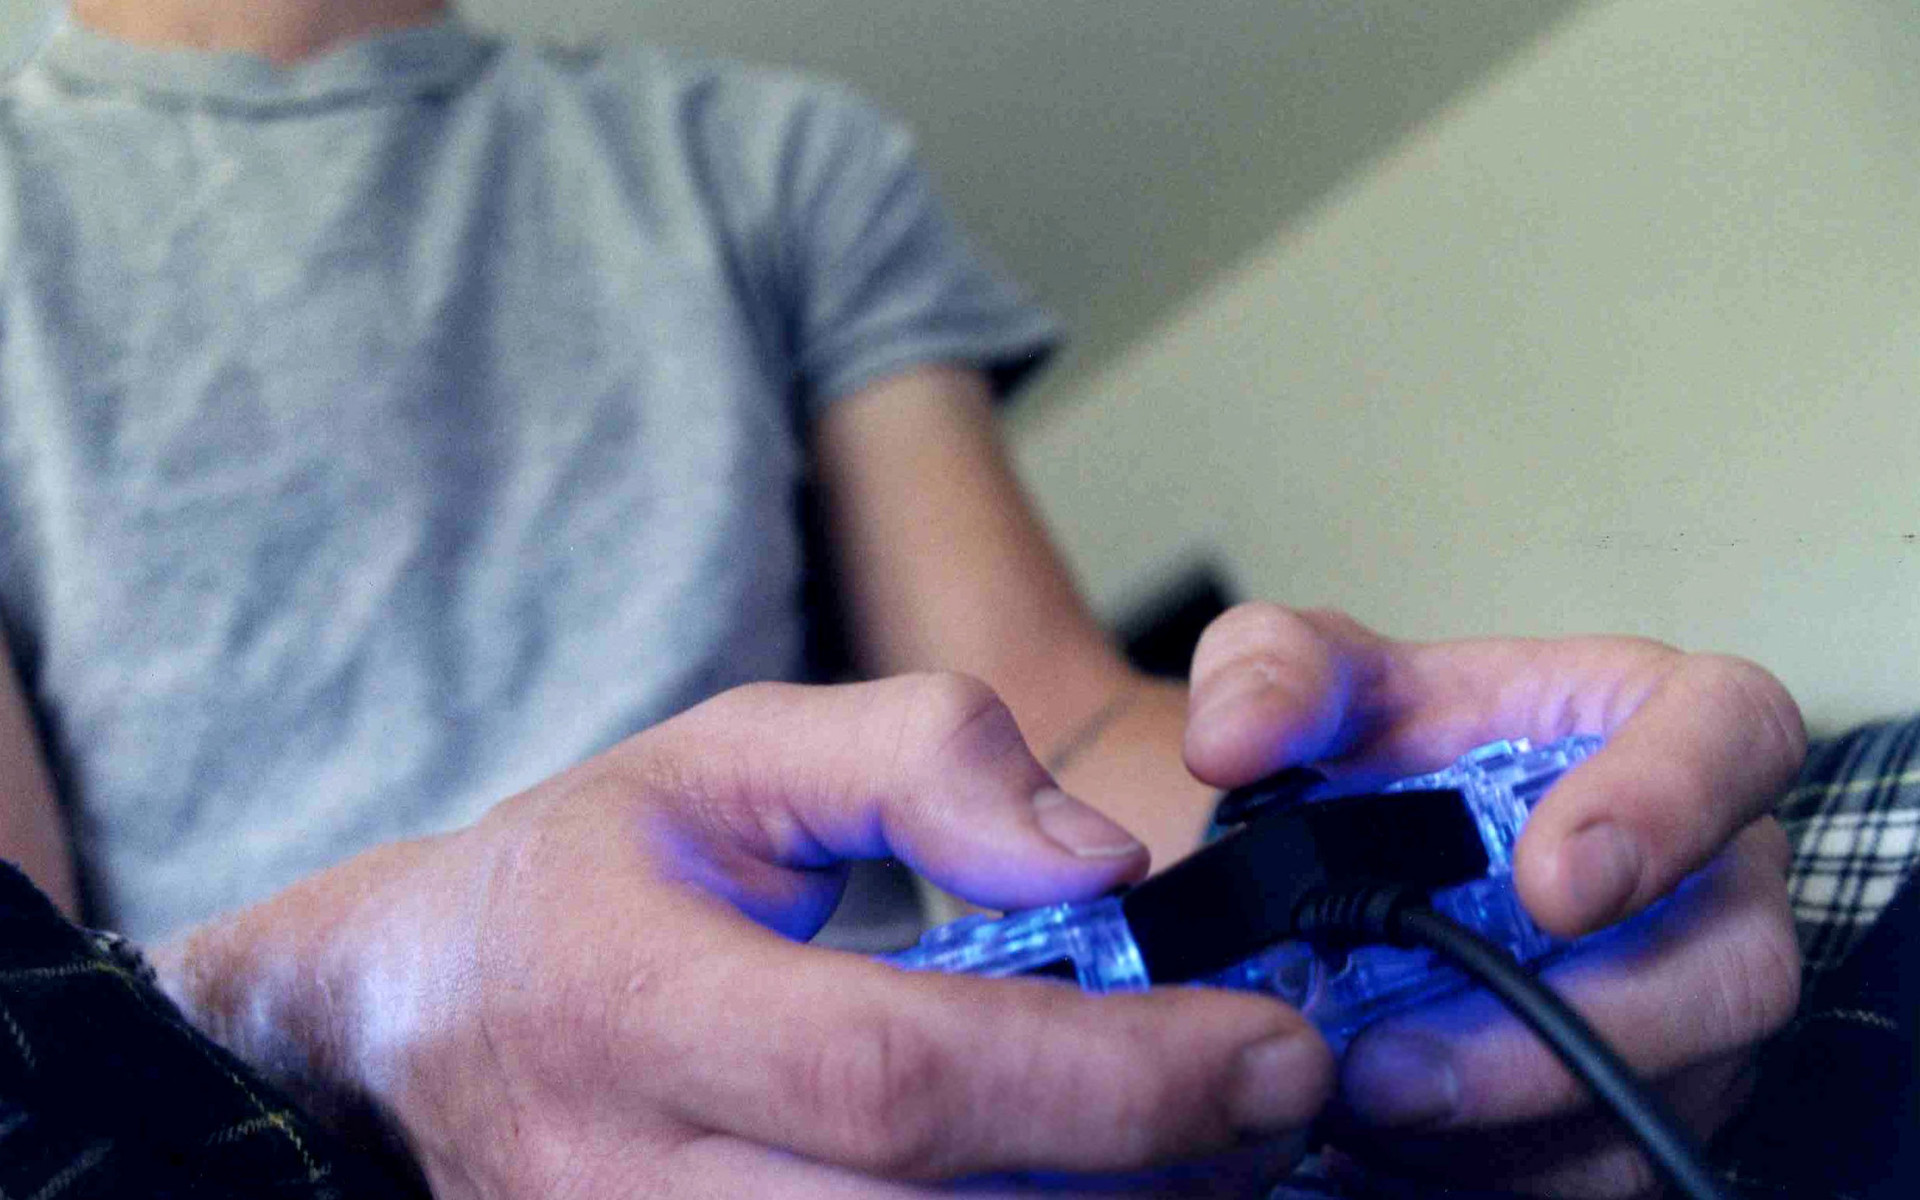 gamer2 avt. Flickr R Polland